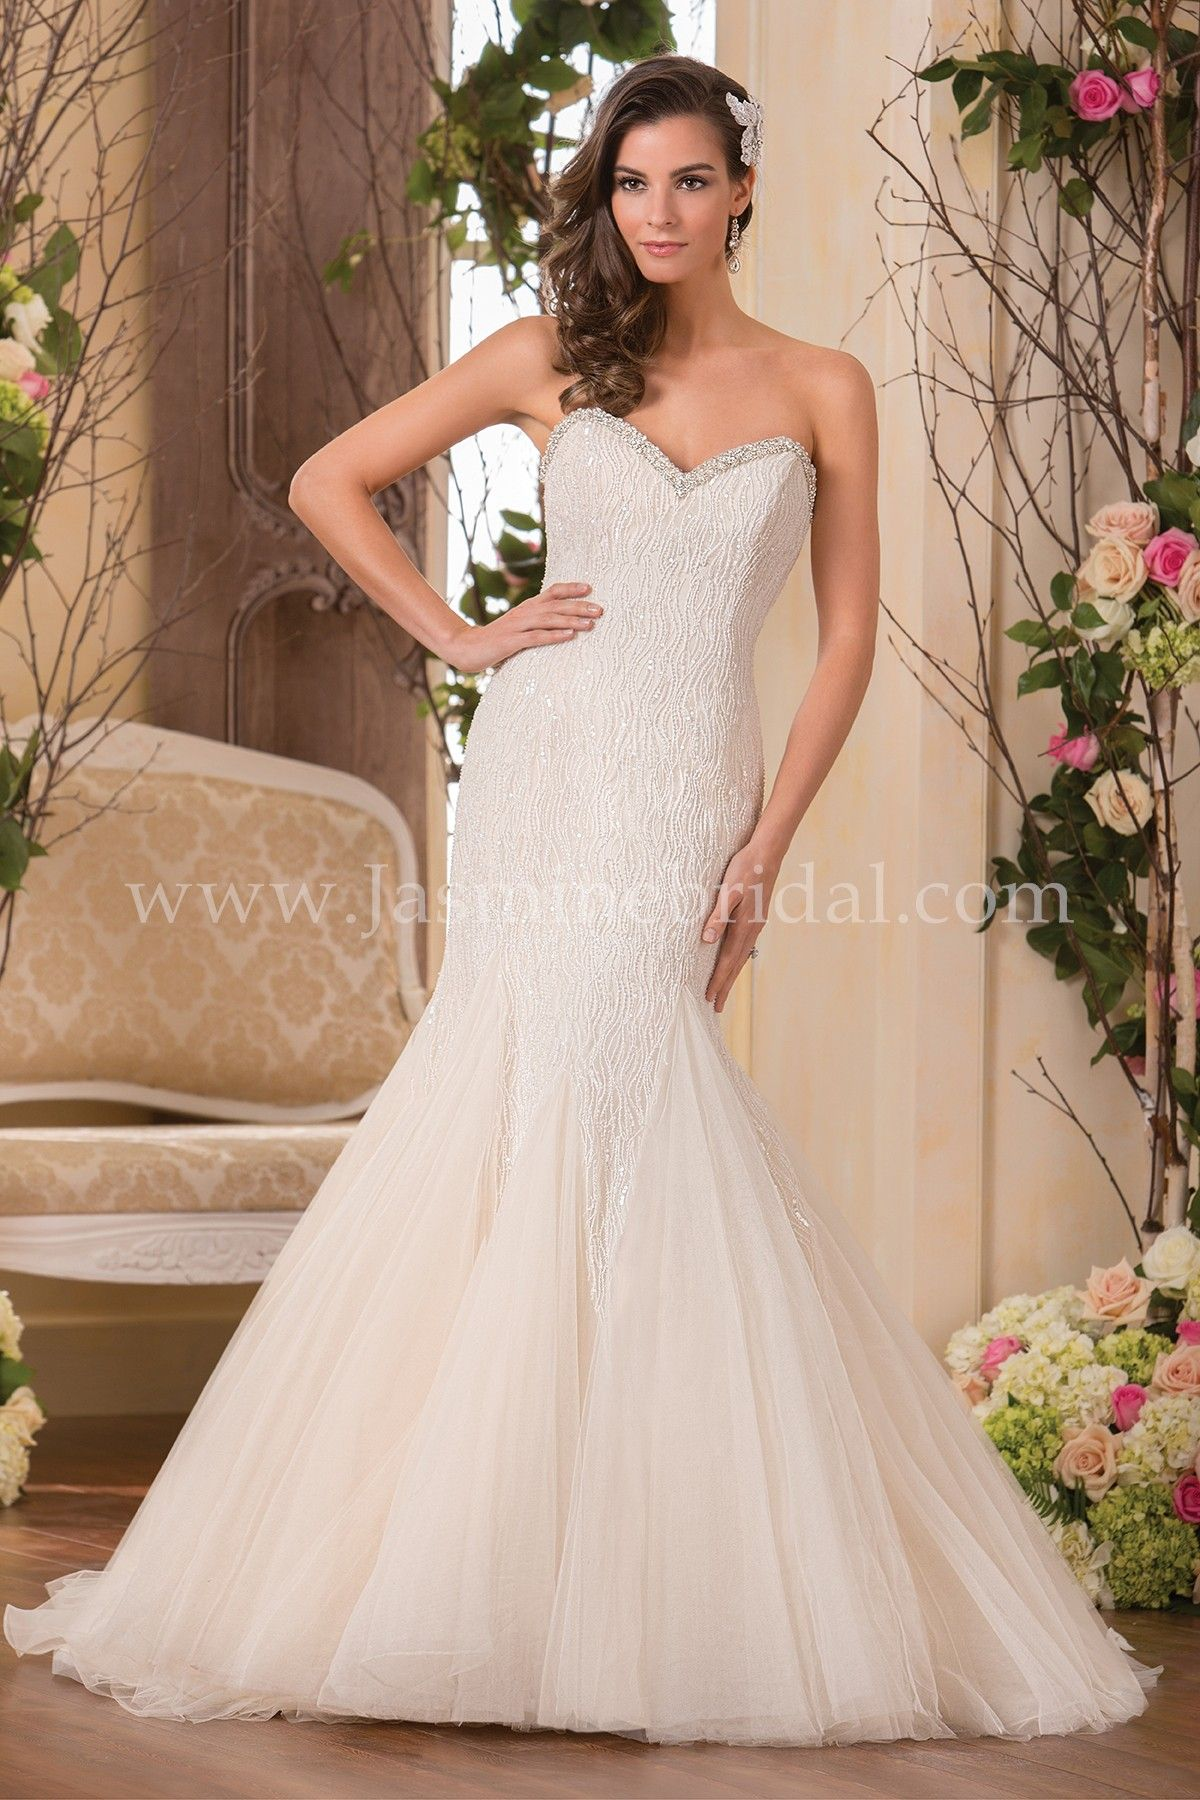 Jasmine bridal collection style f171052 in ivory gold this mother of bride wedding dress etiquette mother of bride beach wedding dresses mother of bride garden wedding dresses mother of bride summer wedding ombrellifo Images